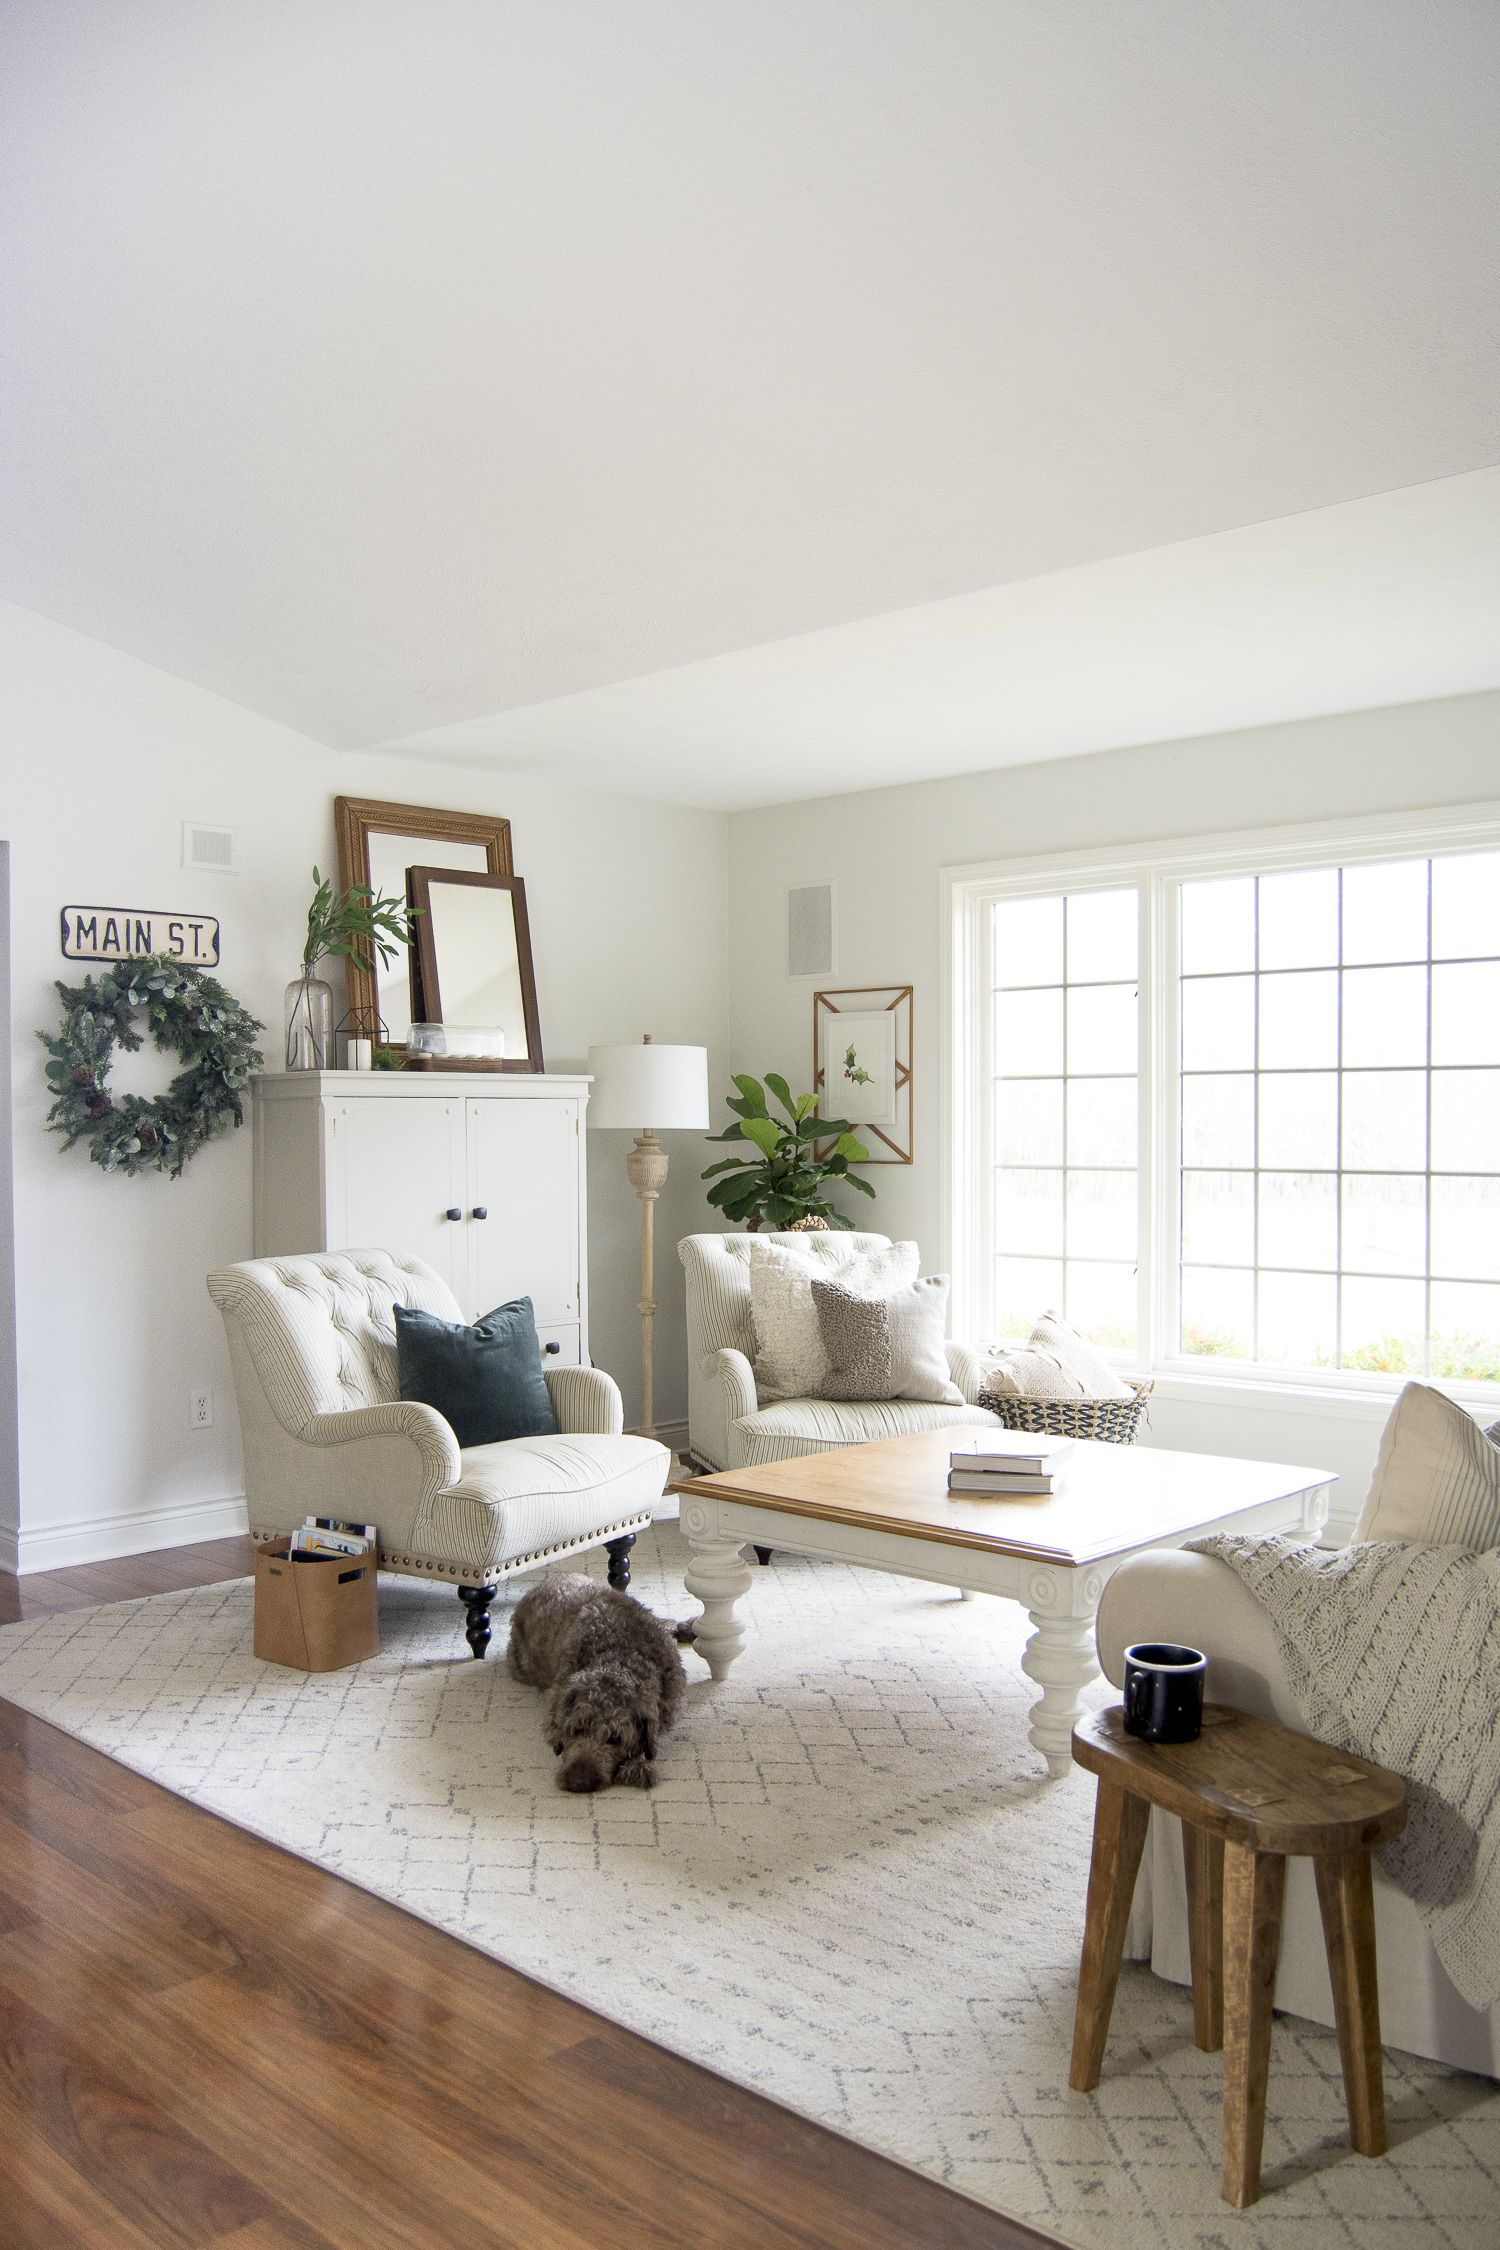 Farmhouse Living Room Furniture Layout Farmhouse living